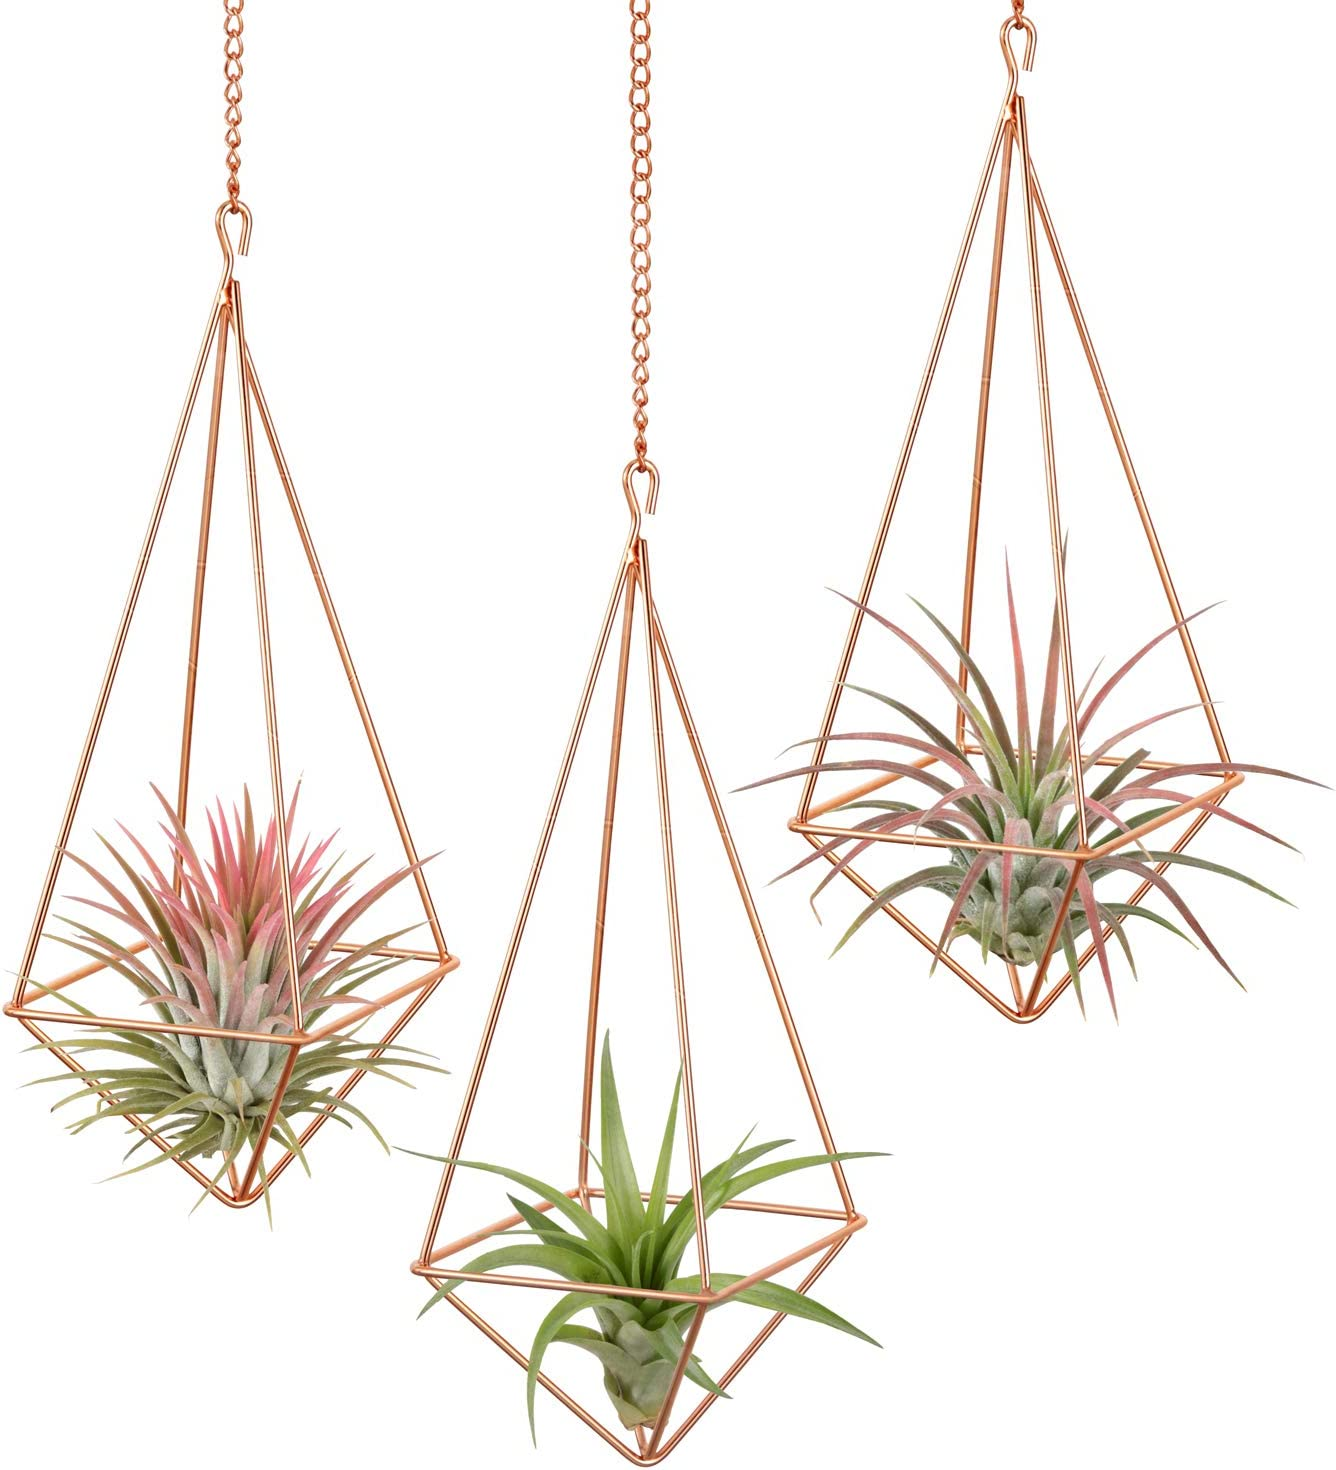 Dahey 3 Pcs Hanging Air Plant Holder Himmeli Geometric Planter Metal Airplant Rack Tillandsia Hanger with Chain in Modern Rustic Art Style for Home Decor Rose Gold